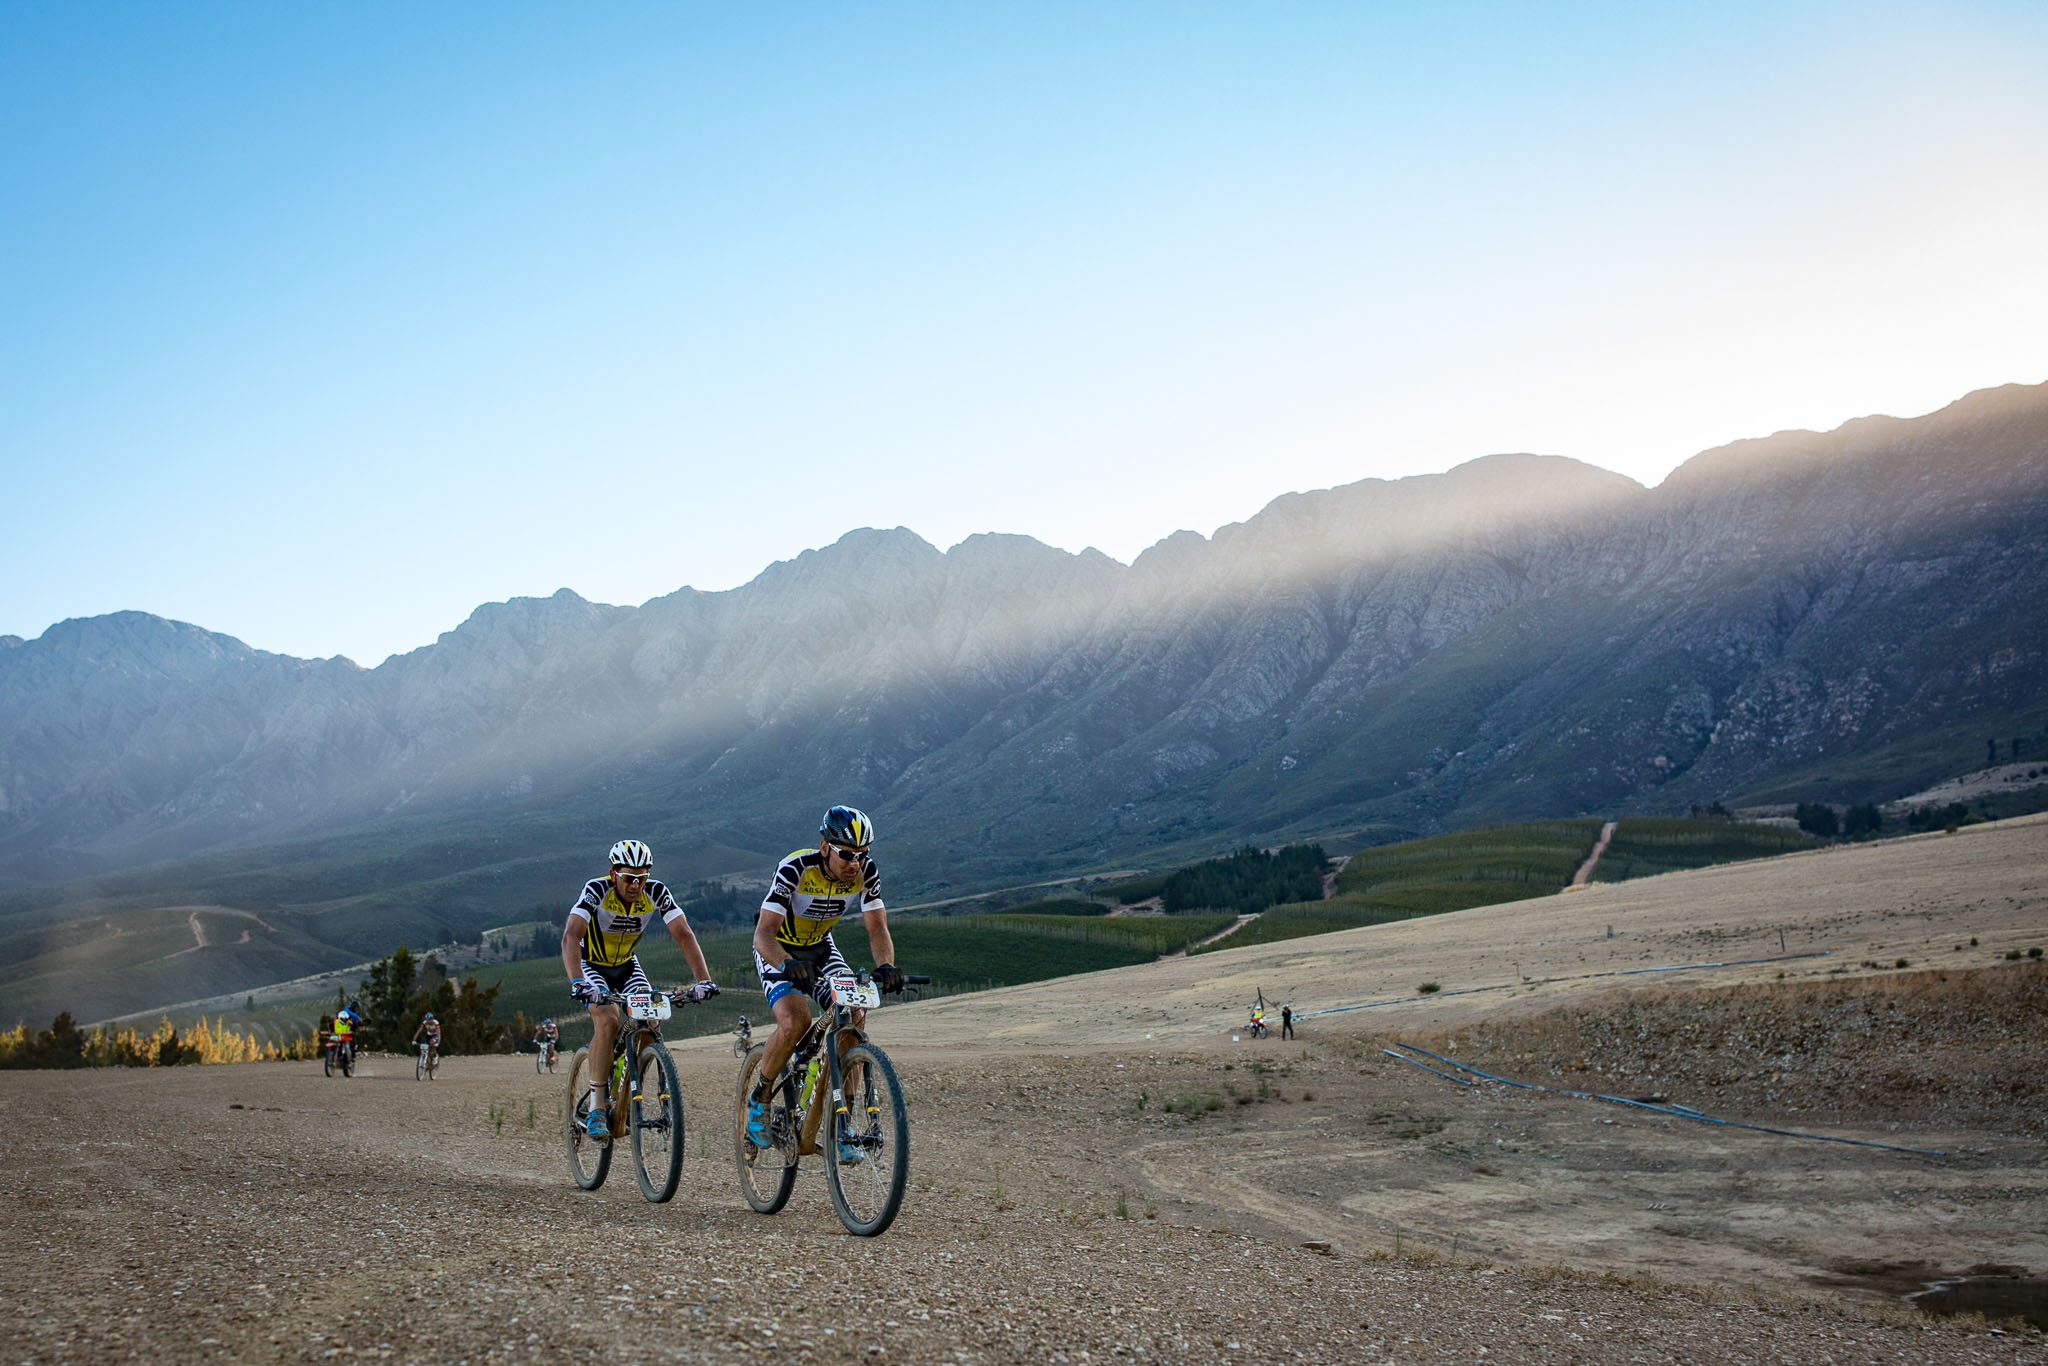 Karl Platt and Urs Huber during stage 1 of the 2016 Absa Cape Epic Mountain Bike stage race held from Saronsberg Wine Estate in Tulbagh, South Africa on the 14th March 2016 Photo by Nick Muzik/Cape Epic/SPORTZPICS PLEASE ENSURE THE APPROPRIATE CREDIT IS GIVEN TO THE PHOTOGRAPHER AND SPORTZPICS ALONG WITH THE ABSA CAPE EPIC {ace2016}